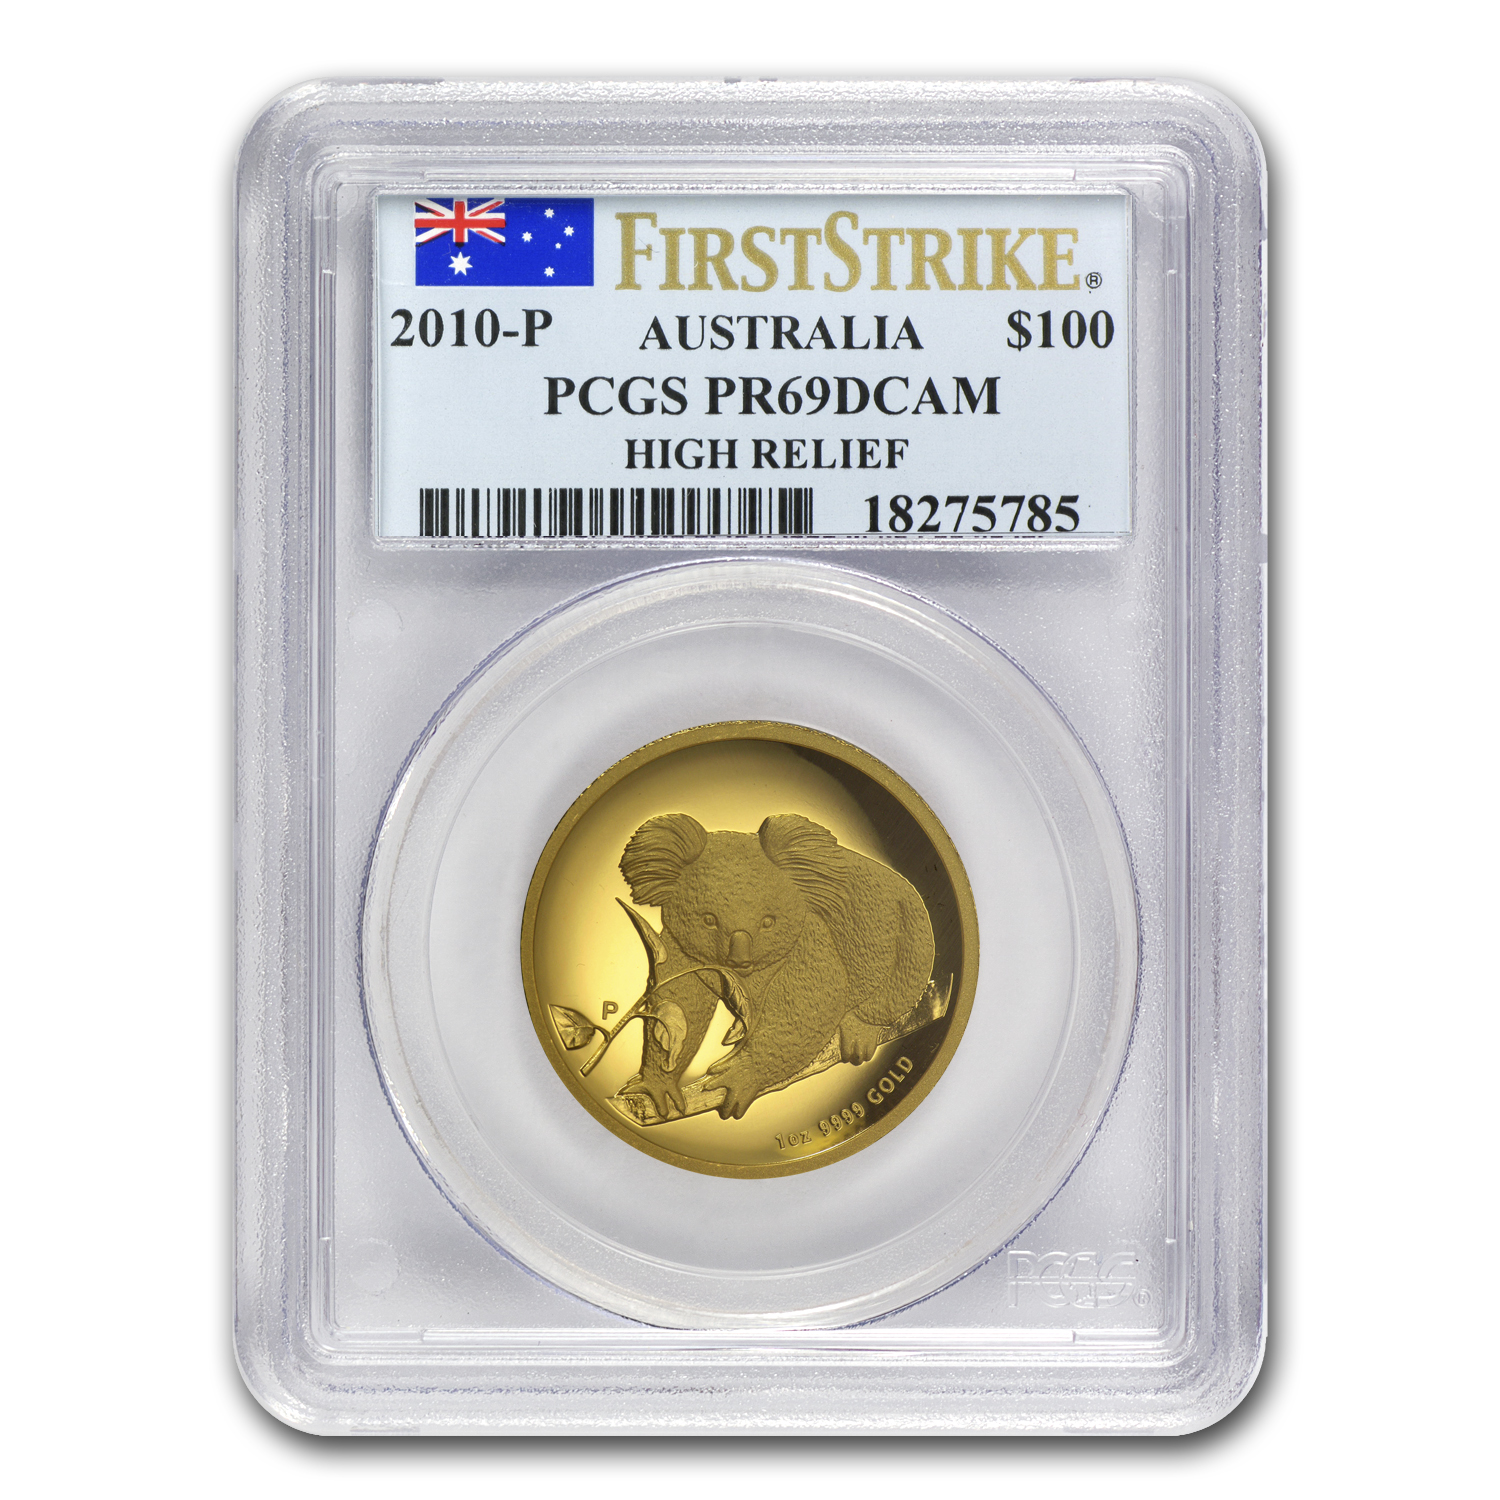 2010-P 1 oz Australian Gold Koala PR-69 PCGS (FS, High Relief)